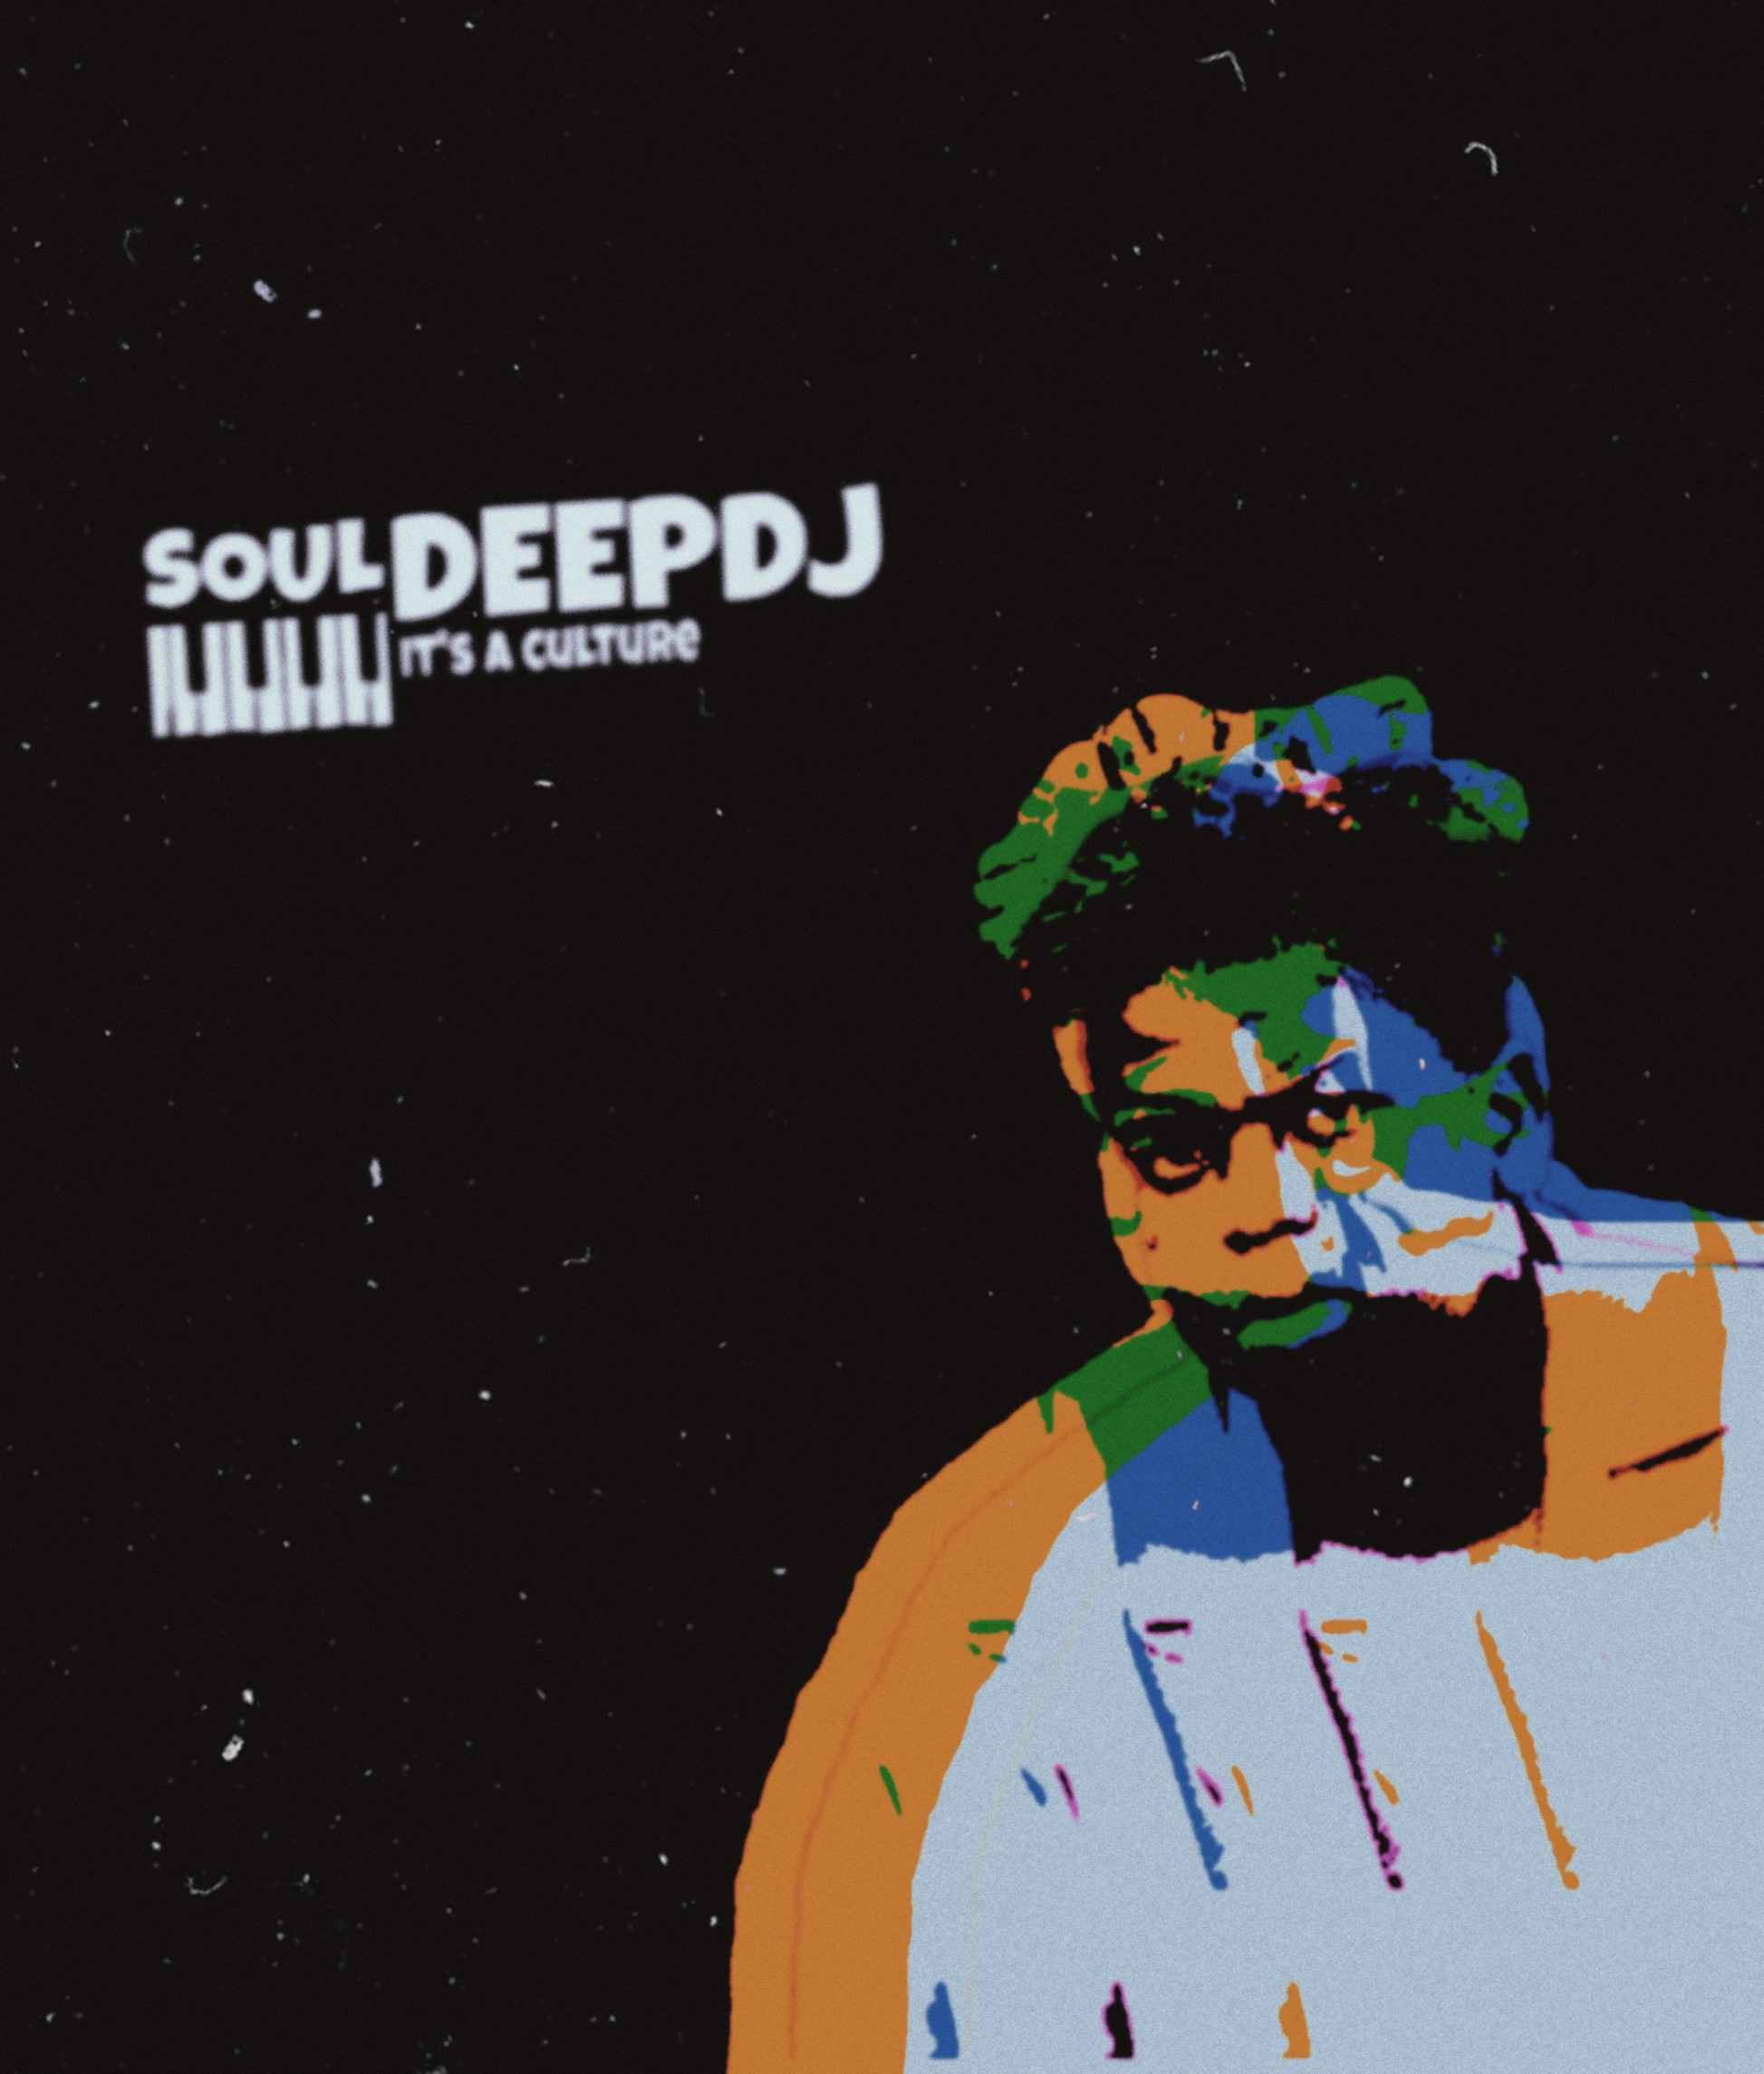 Soul DEEPDJ Touch The Sky (Vocal Mix)